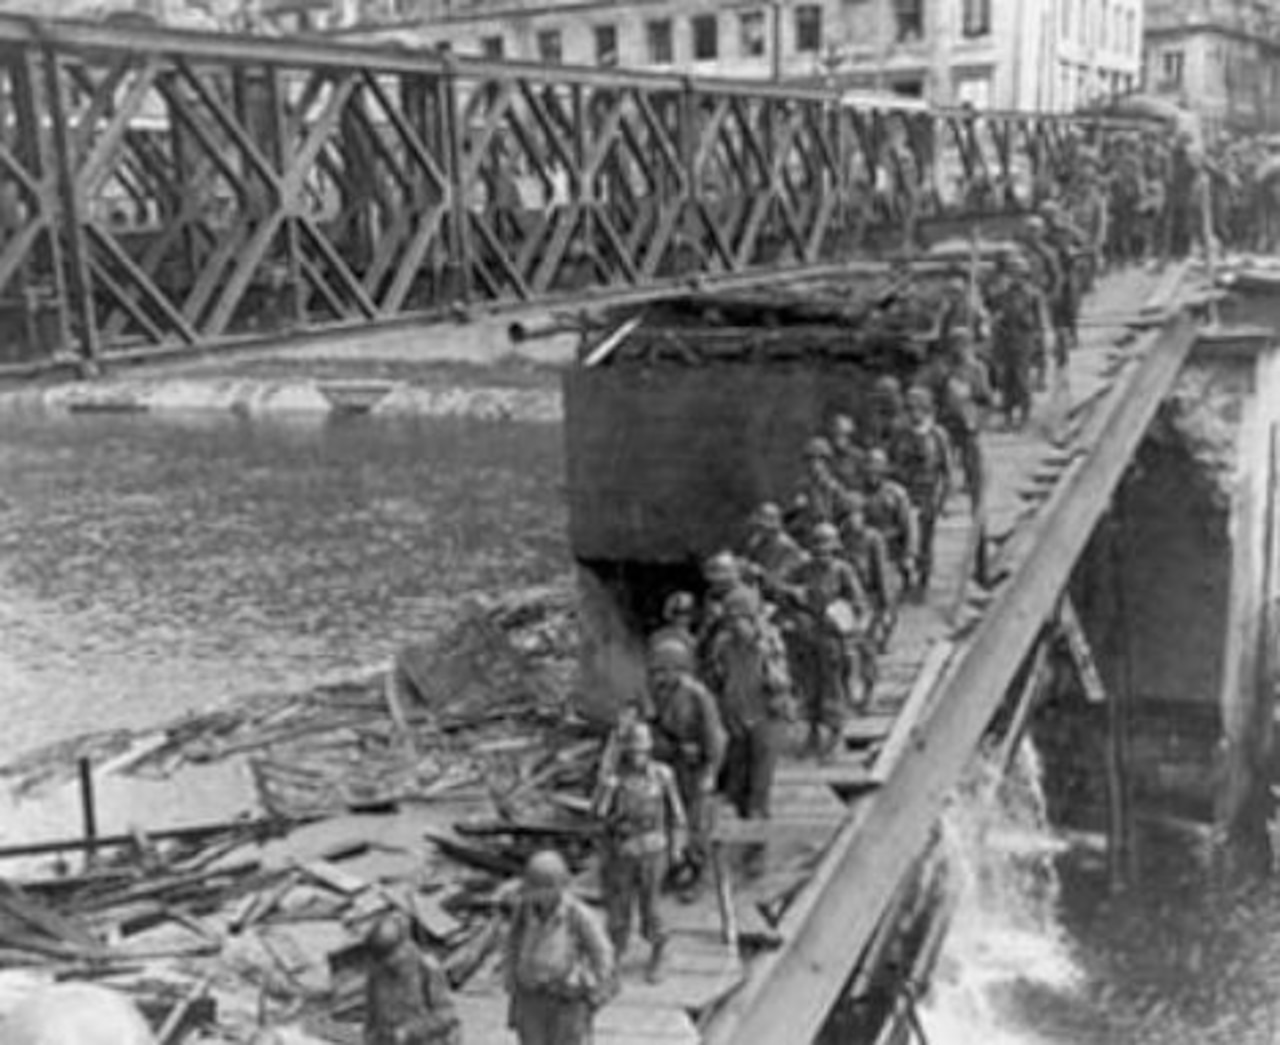 Dozens of soldiers march across a foot bridge over a river.